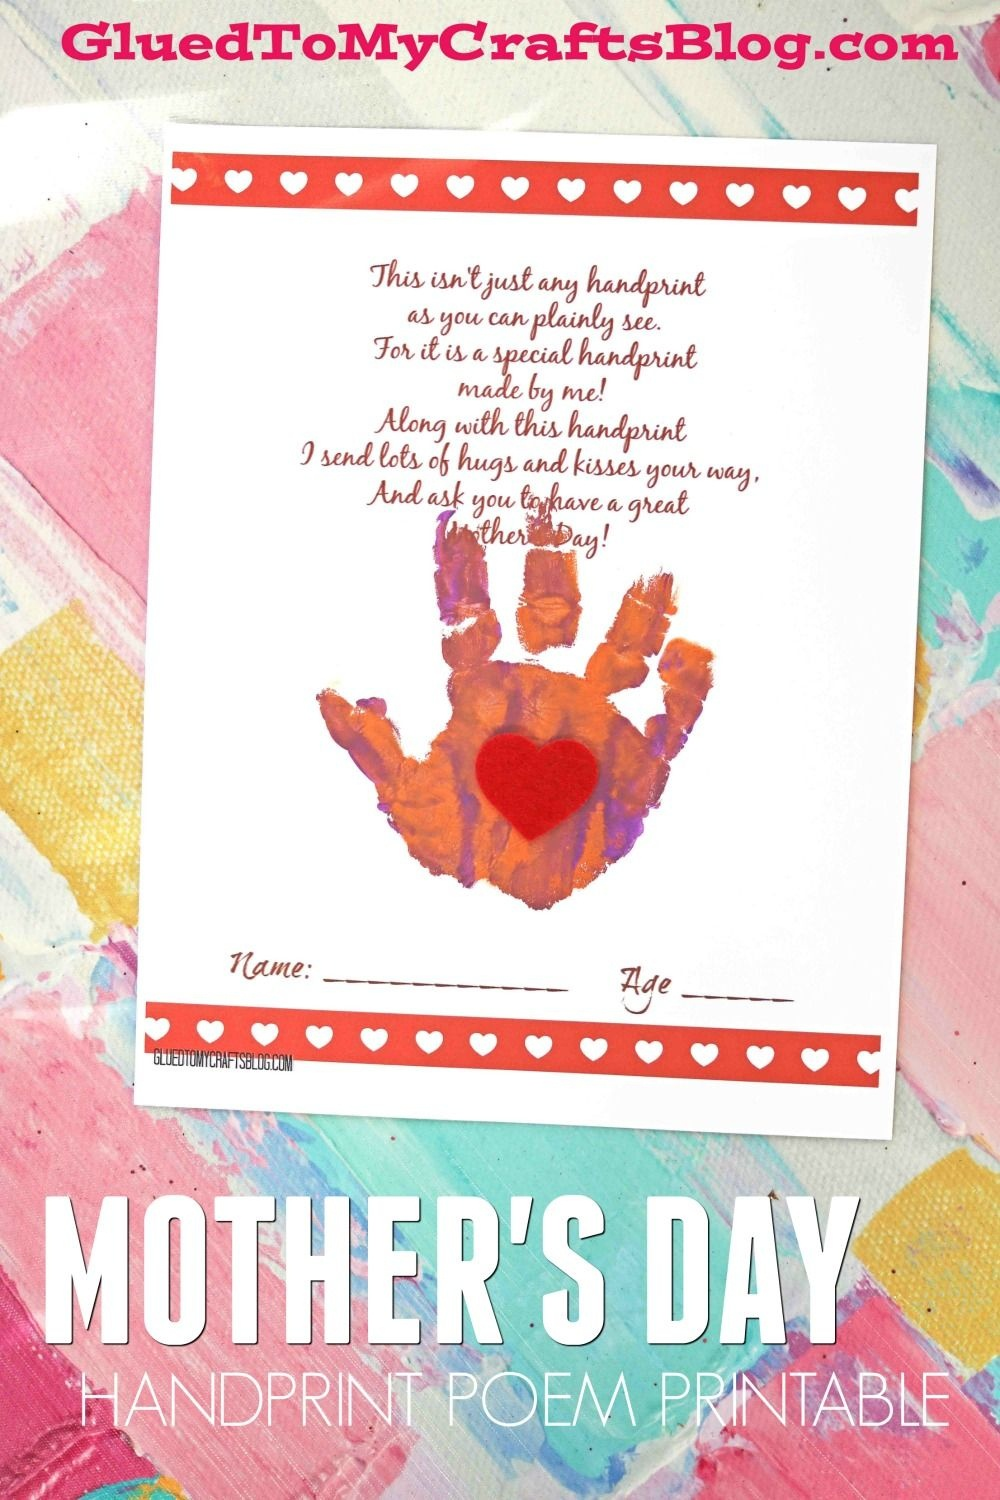 Handprint Mother's Day Poem Printable | Glued To My Crafts - Free Printable Mothers Day Poems